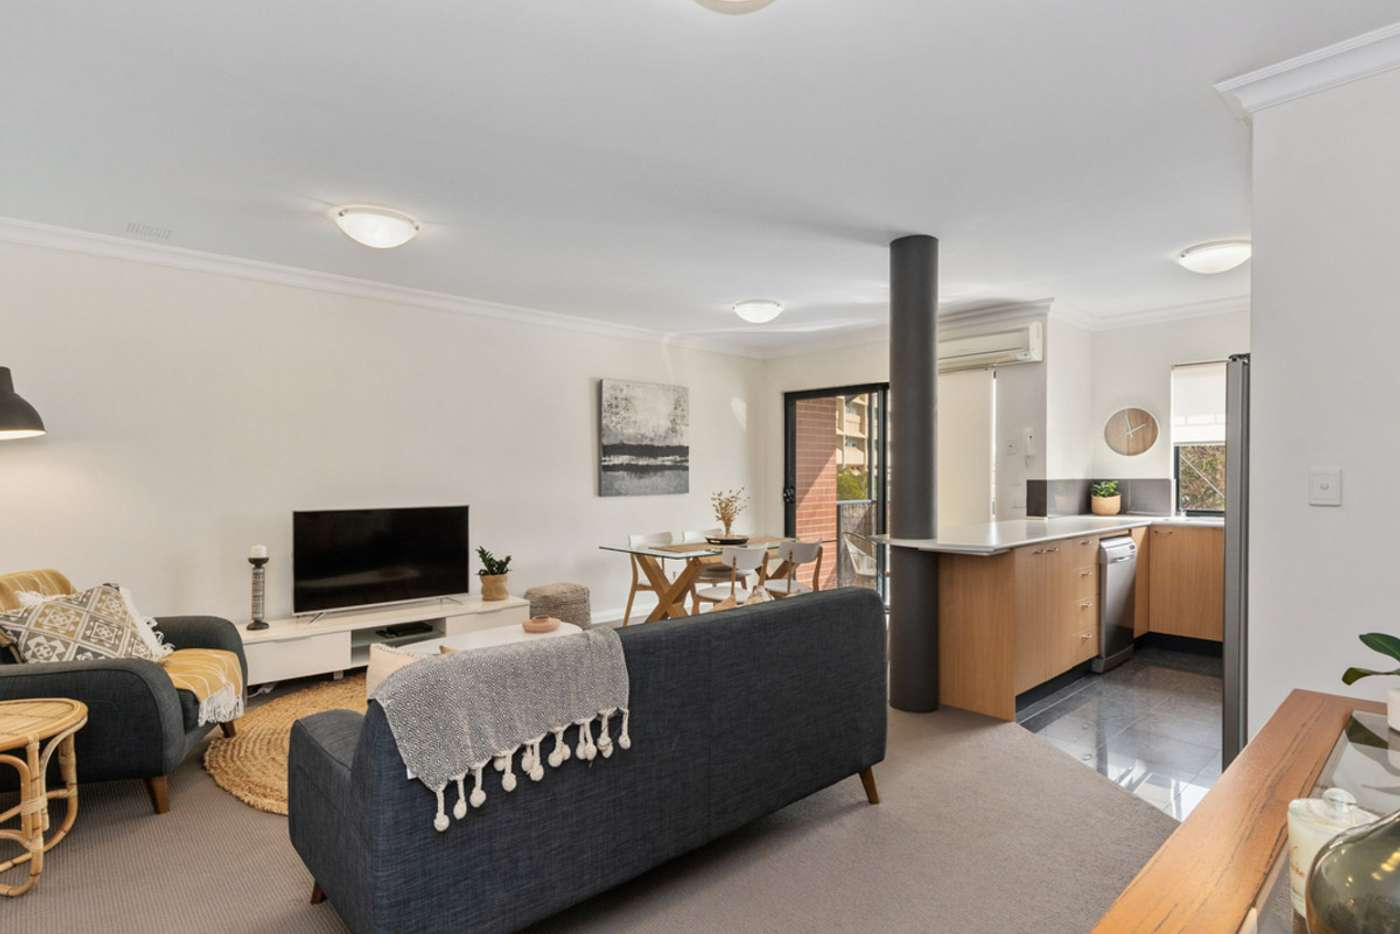 Sixth view of Homely apartment listing, 23/7 Bronte Street, East Perth WA 6004